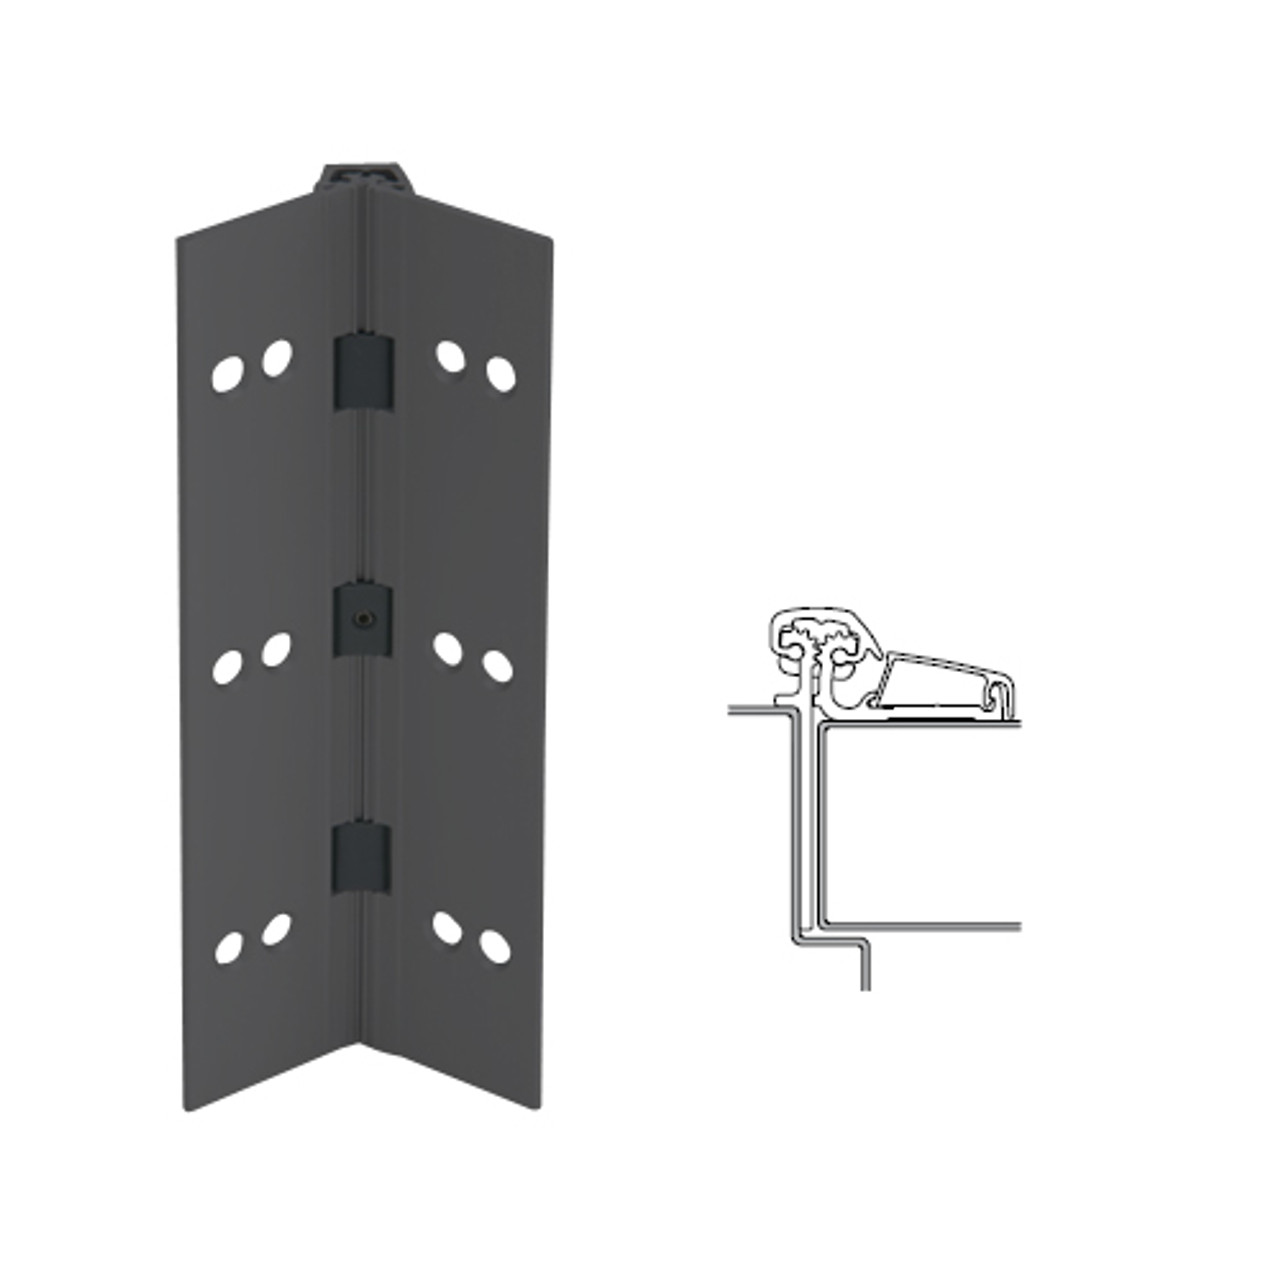 054XY-315AN-83-SECWDHM IVES Adjustable Half Surface Continuous Geared Hinges with Security Screws - Hex Pin Drive in Anodized Black